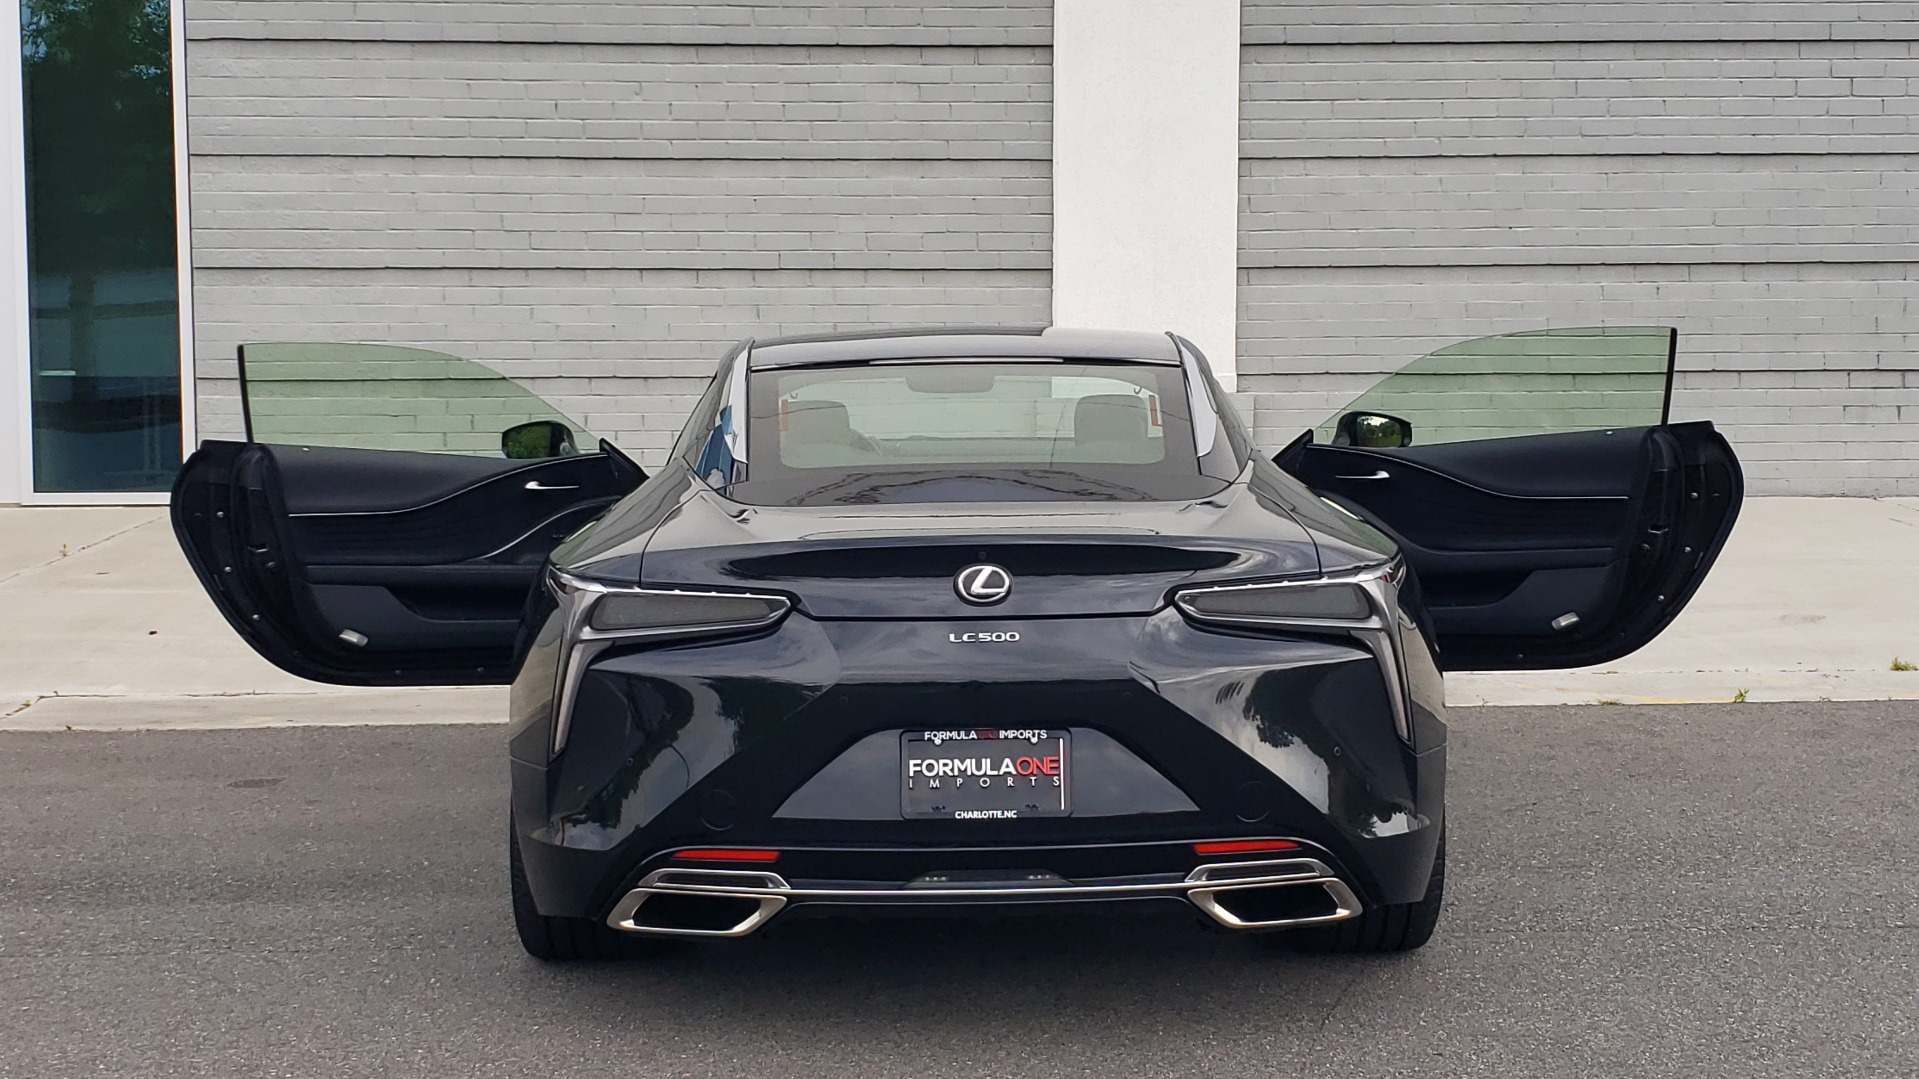 Used 2018 Lexus LC 500 COUPE / 5.0L V8 (471HP) / 10-SPD AUTO / HUD / SUNROOF / REARVIEW for sale Sold at Formula Imports in Charlotte NC 28227 33